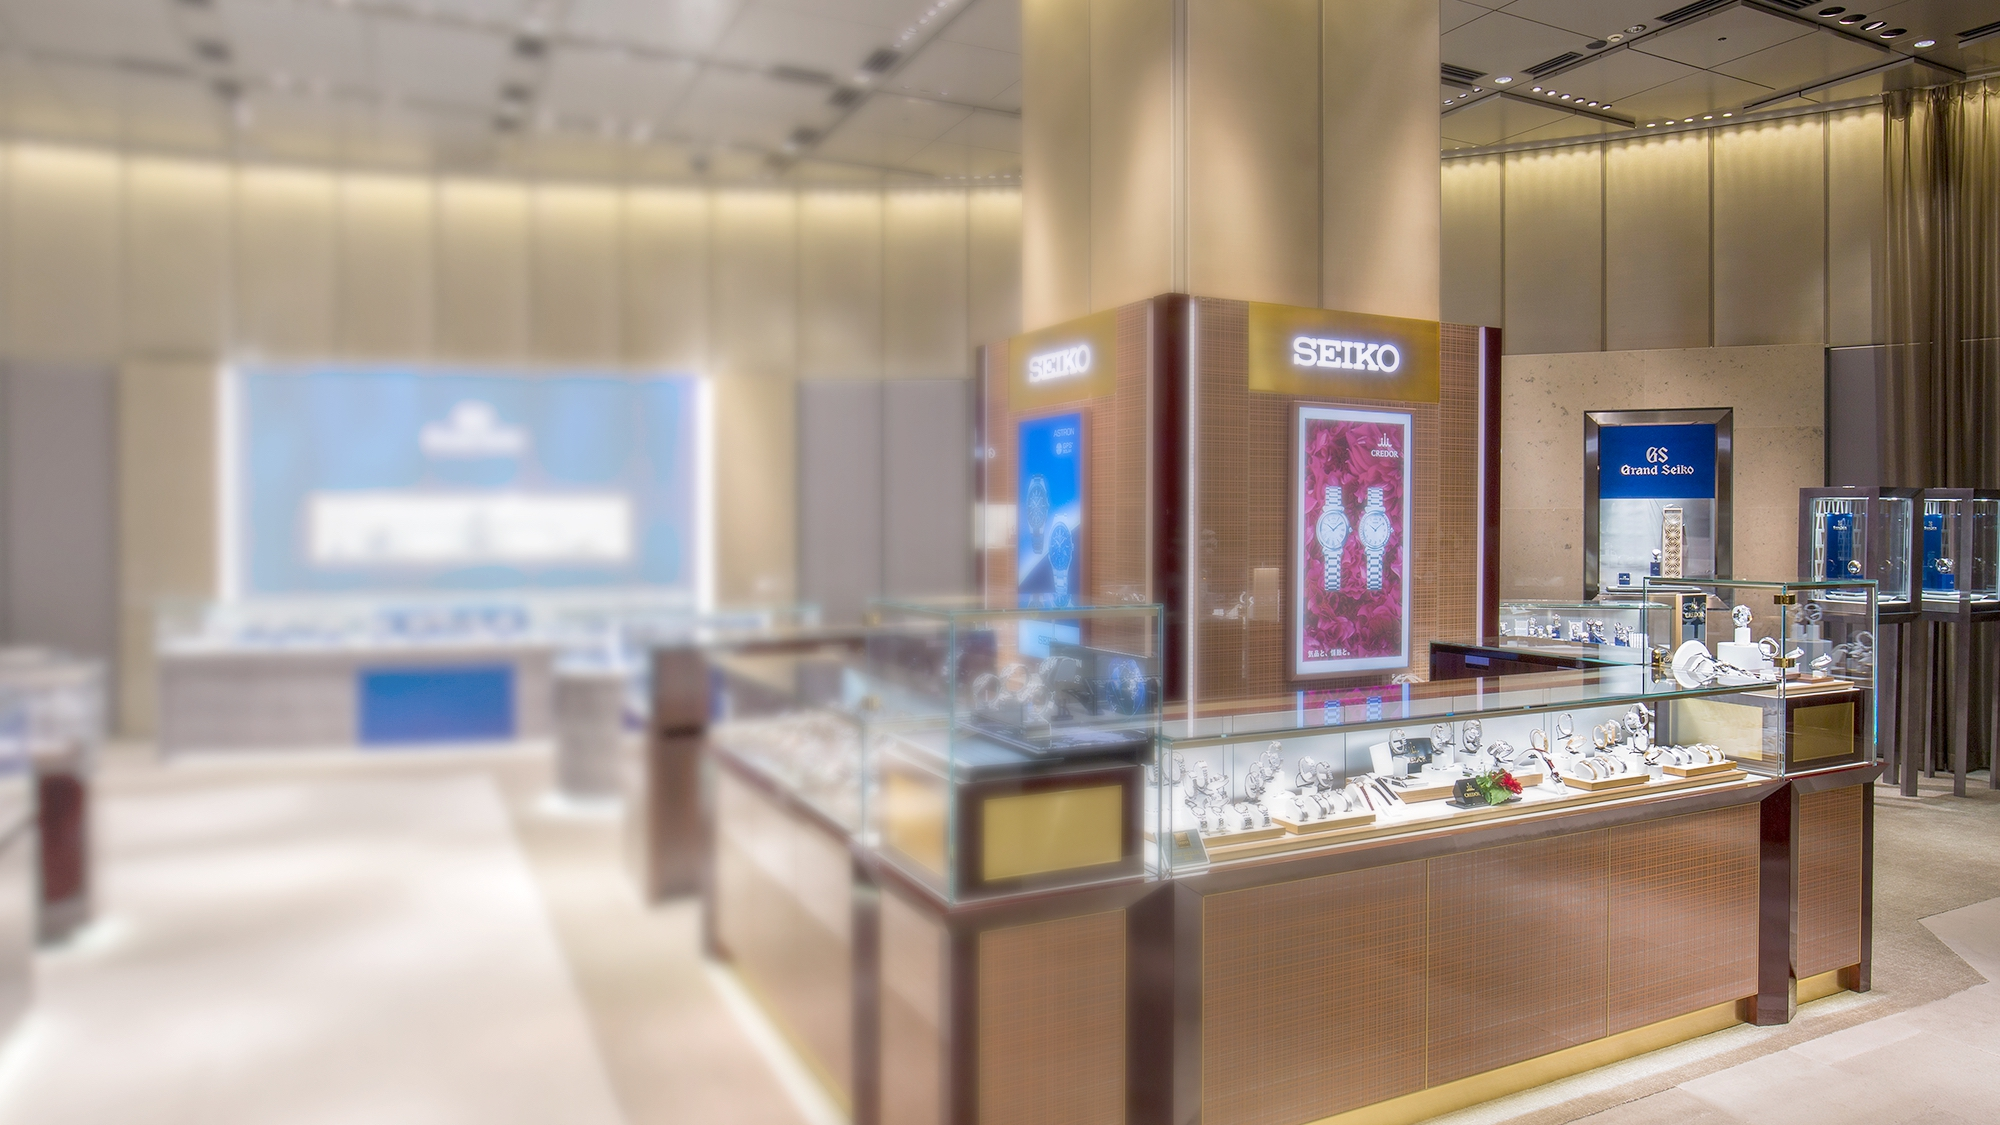 Seiko Flagship Salon